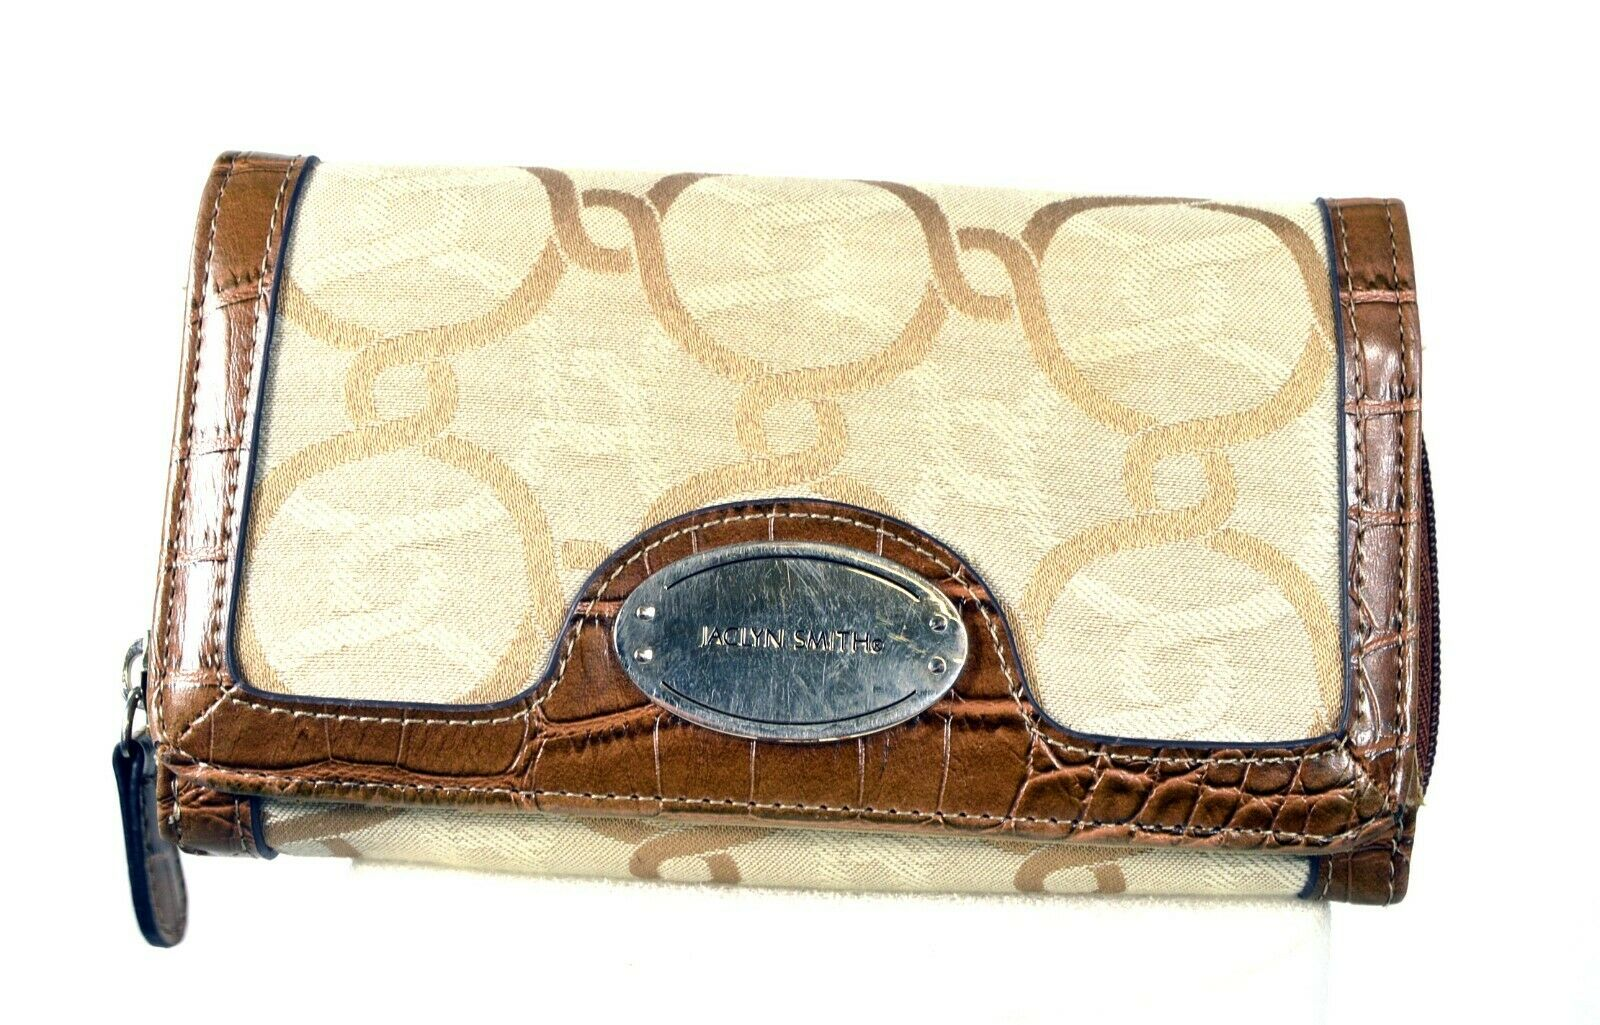 Jaclyn Smith Organizer Clutch Wallet - Brown and Tan w/ Zipper - 7in x 4in